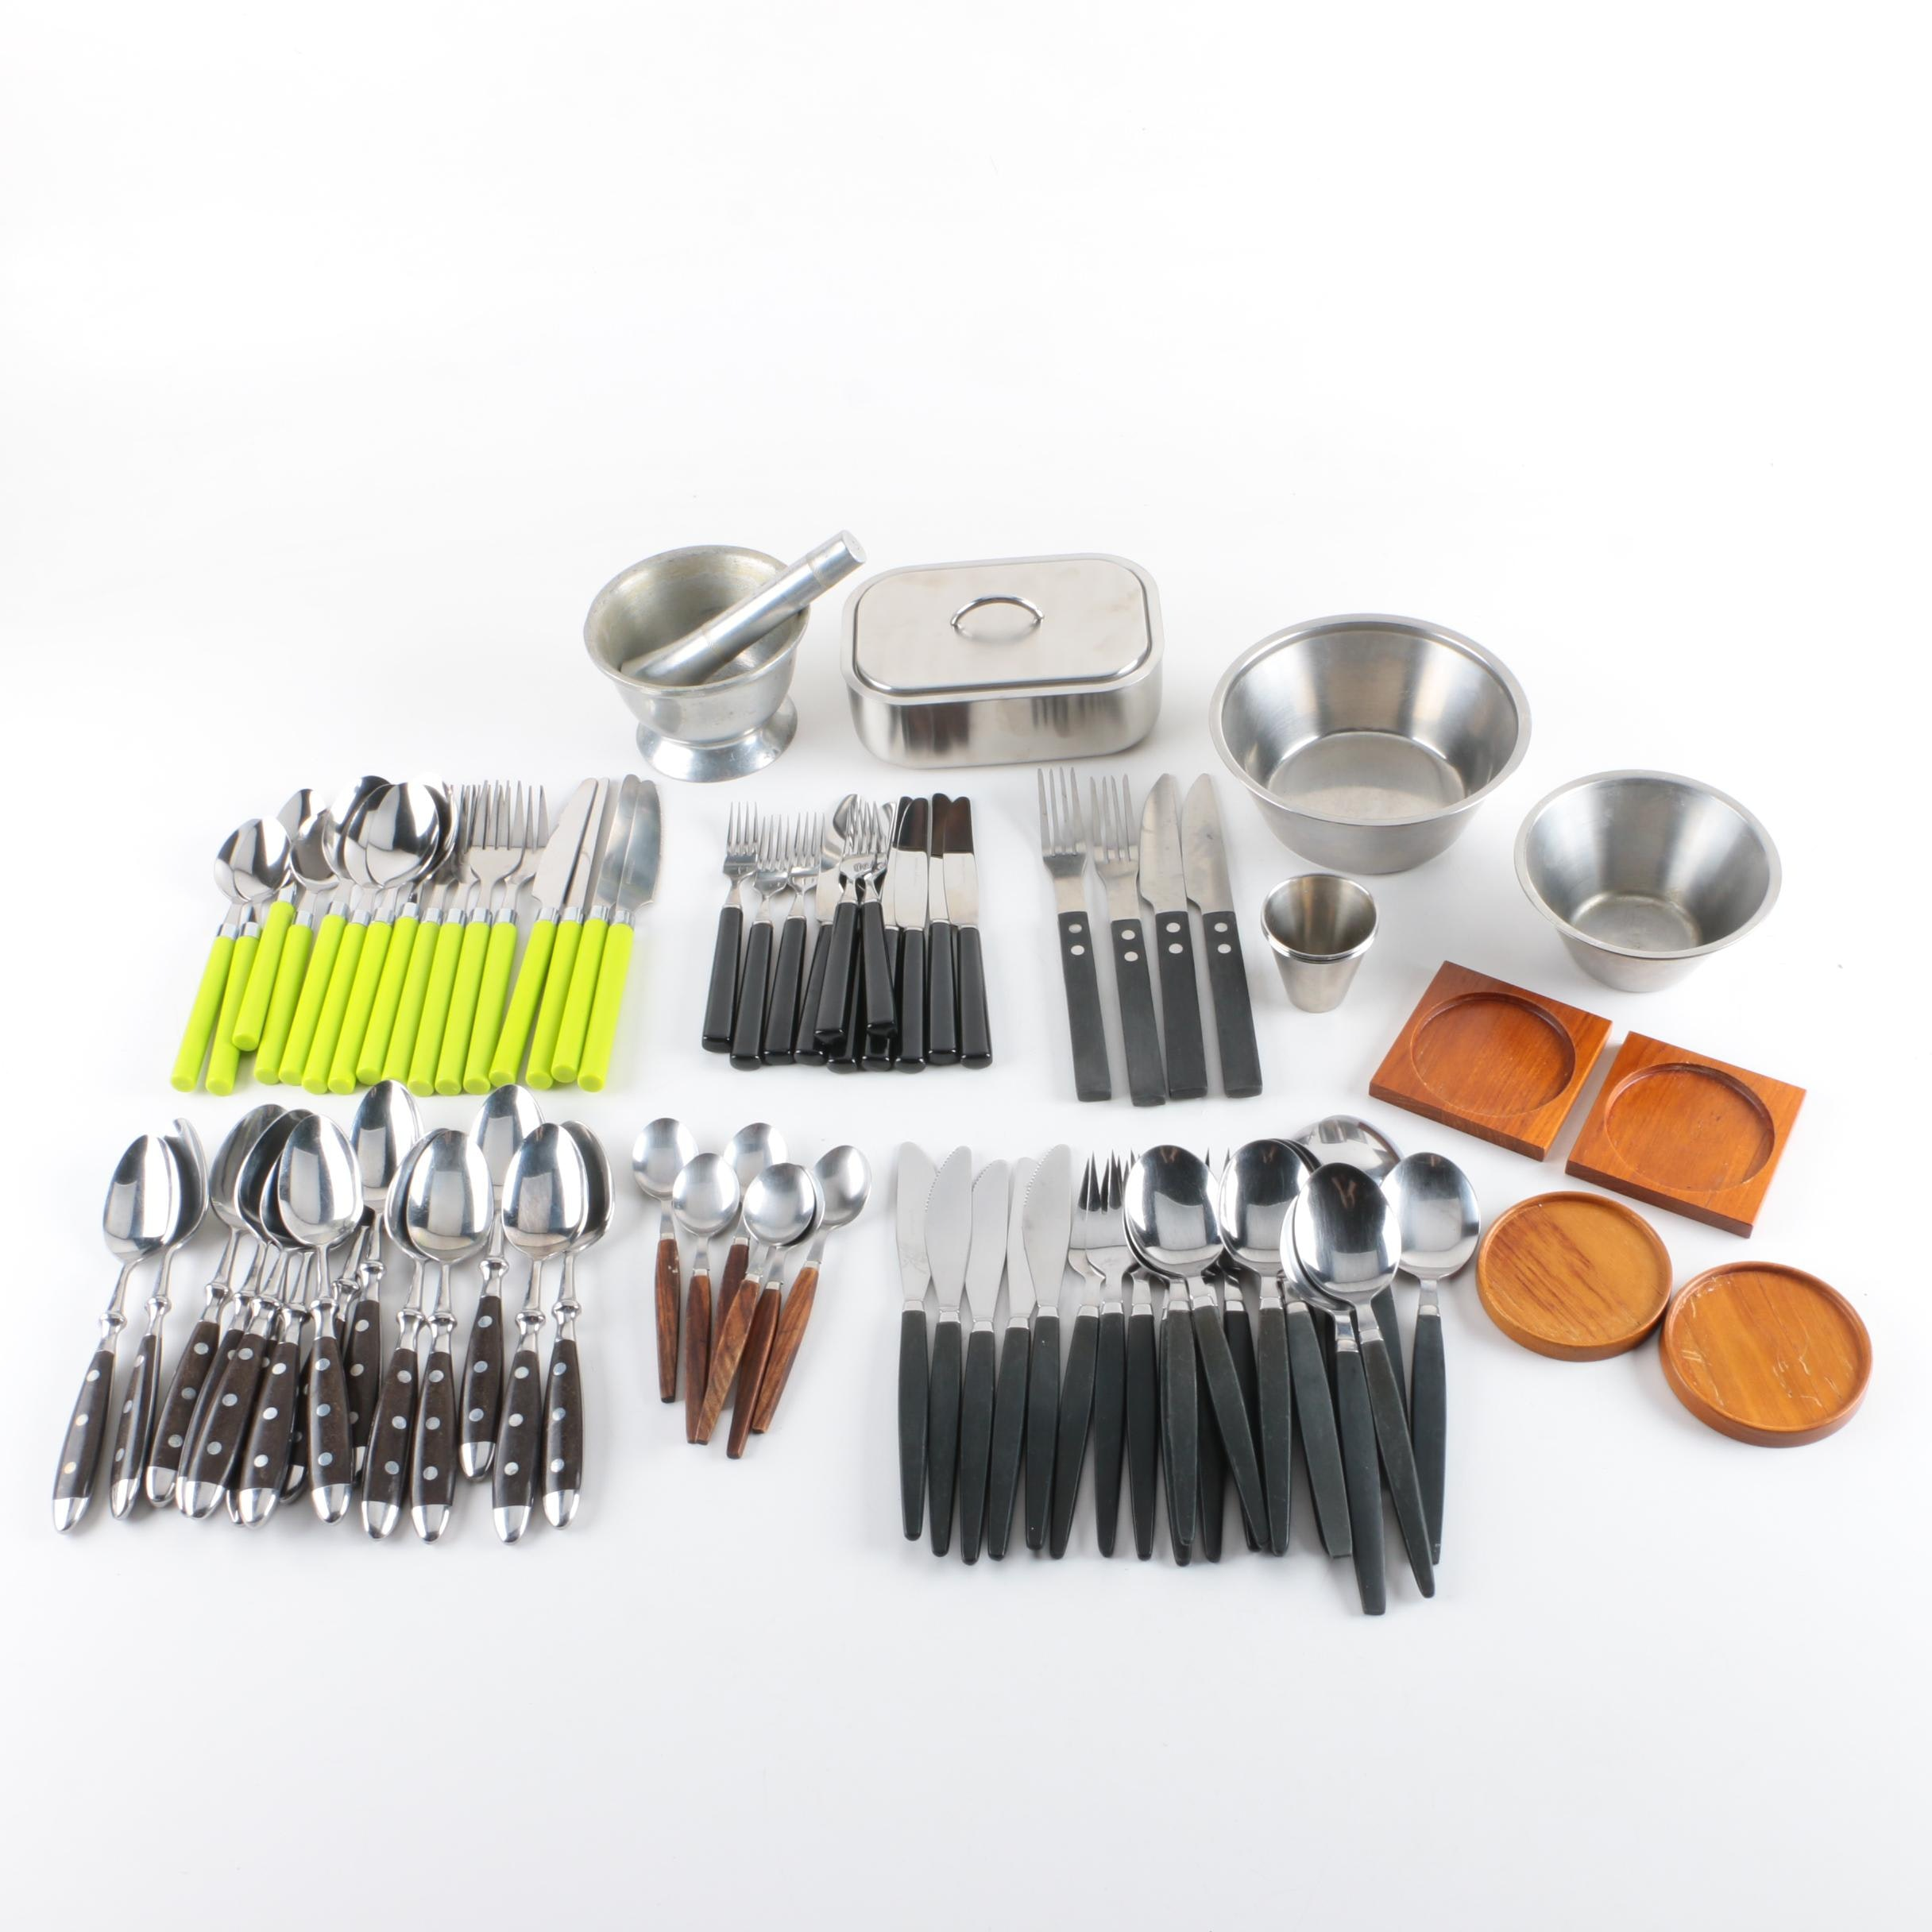 Swedish Stainless Tableware and Flatware Assortment